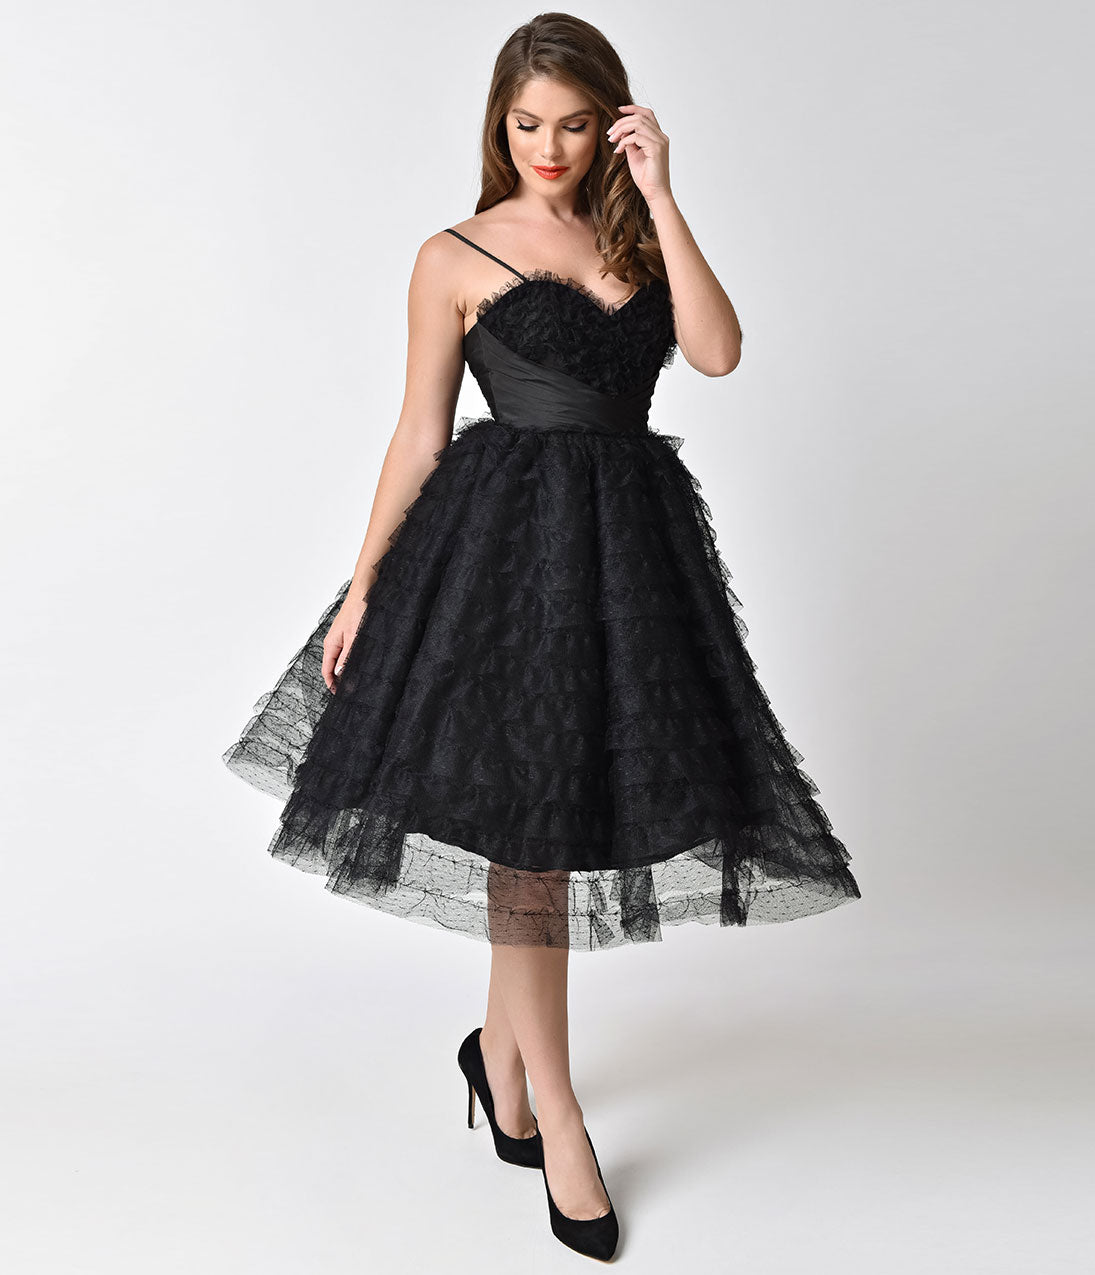 1950s Cocktail Dresses, Party Dresses Unique Vintage 1950S Black Ruffled Tulle Sweetheart Cupcake Swing Dress $128.00 AT vintagedancer.com